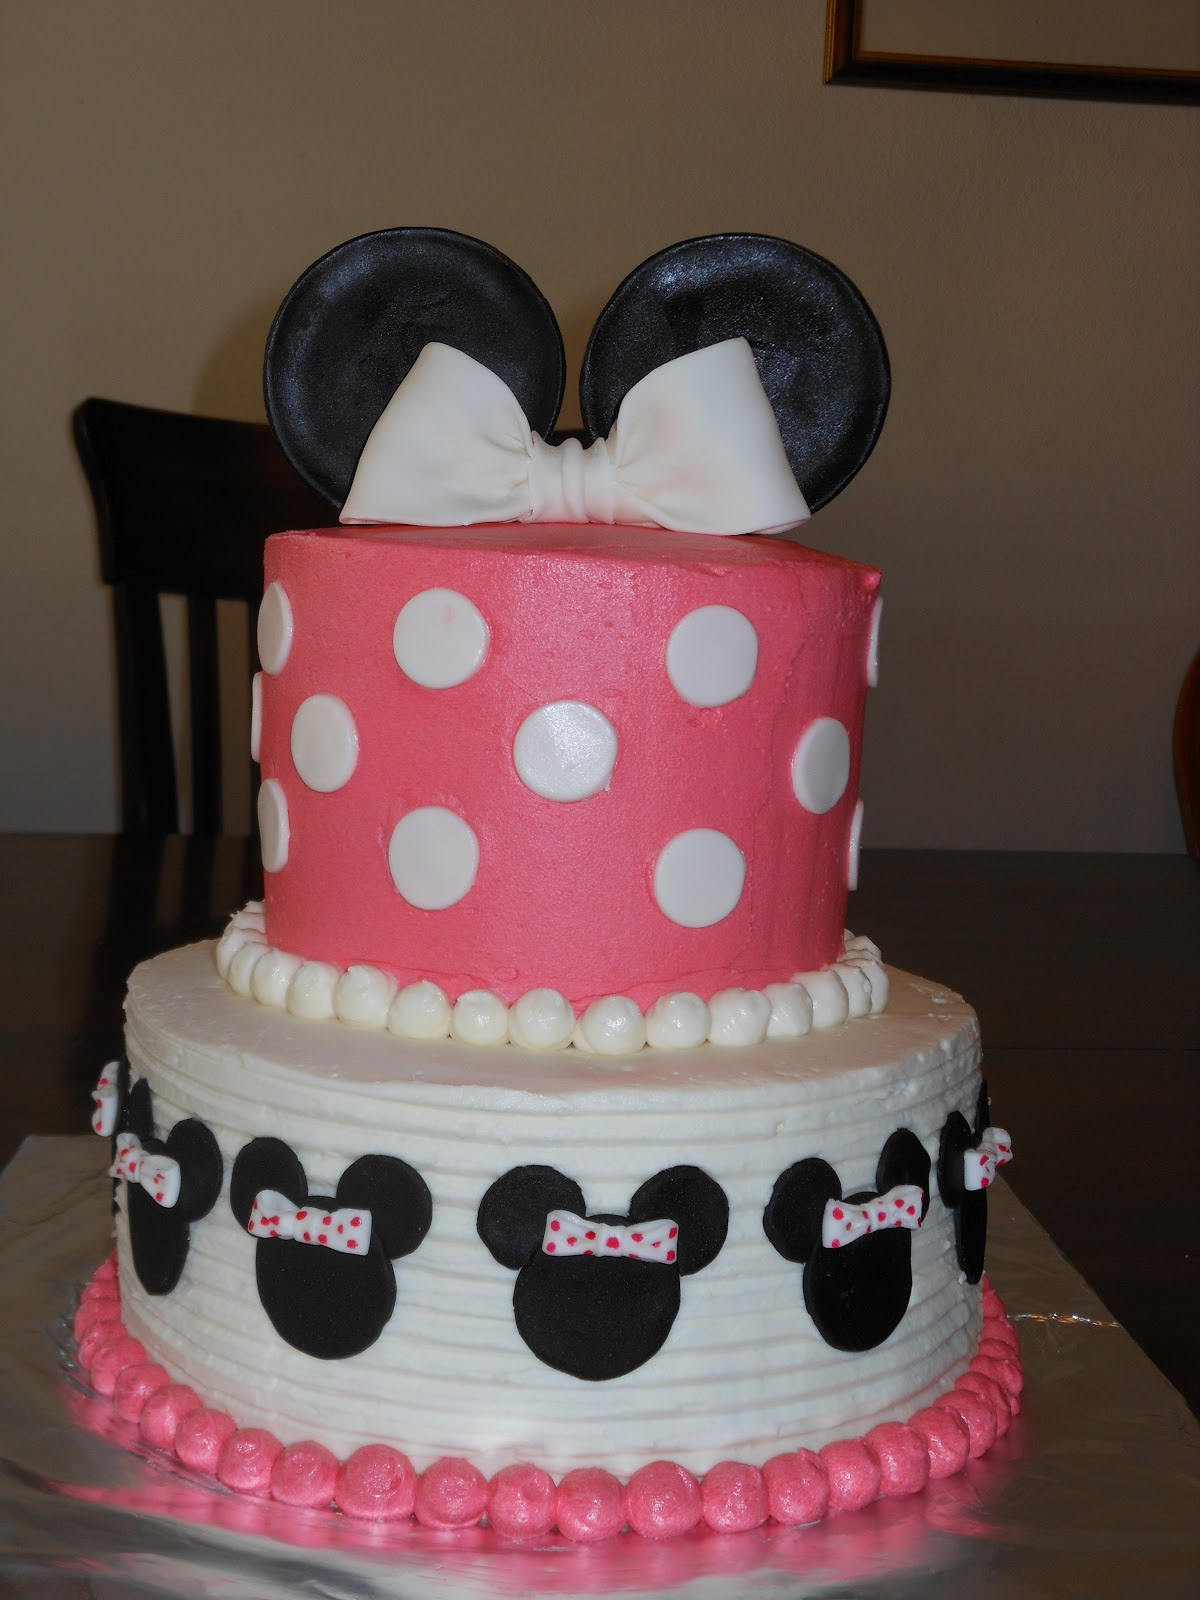 Minnie Mouse Images For Cake : It s a piece of cake: Minnie Mouse Birthday Cake